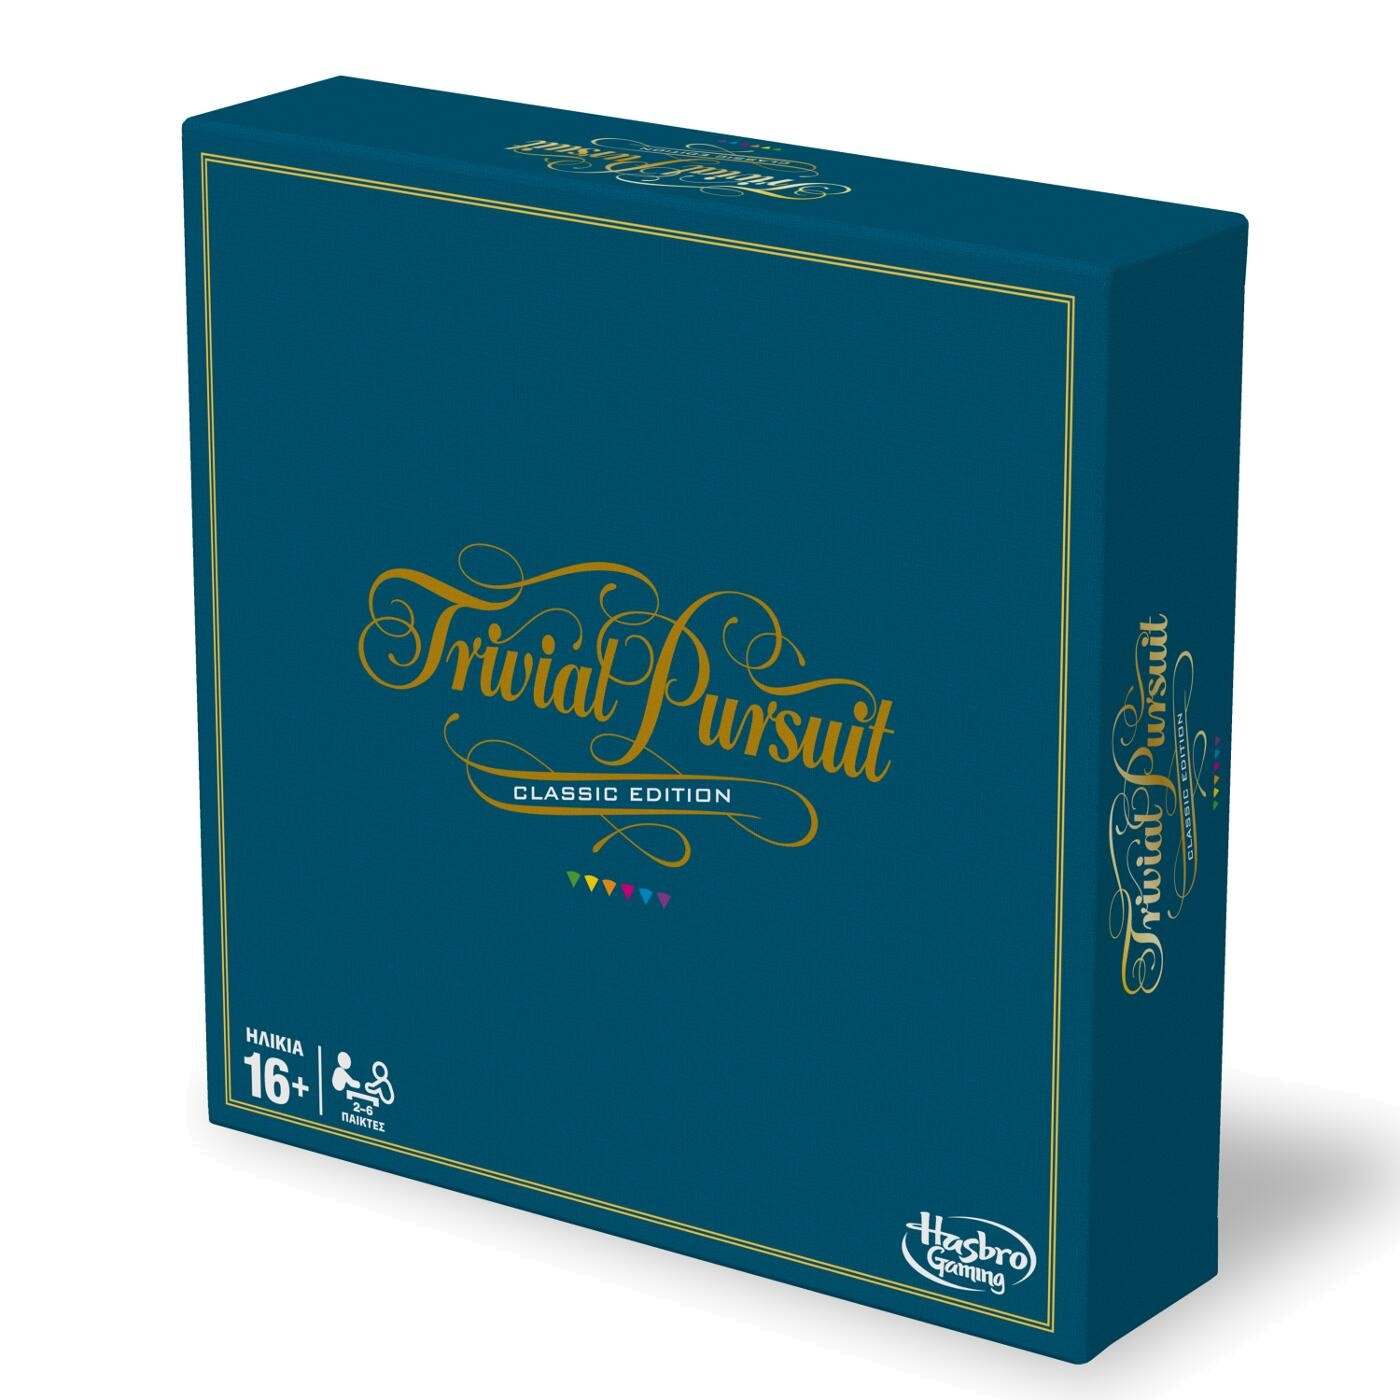 TRIVIAL PURSUIT CLASSIC EDITION